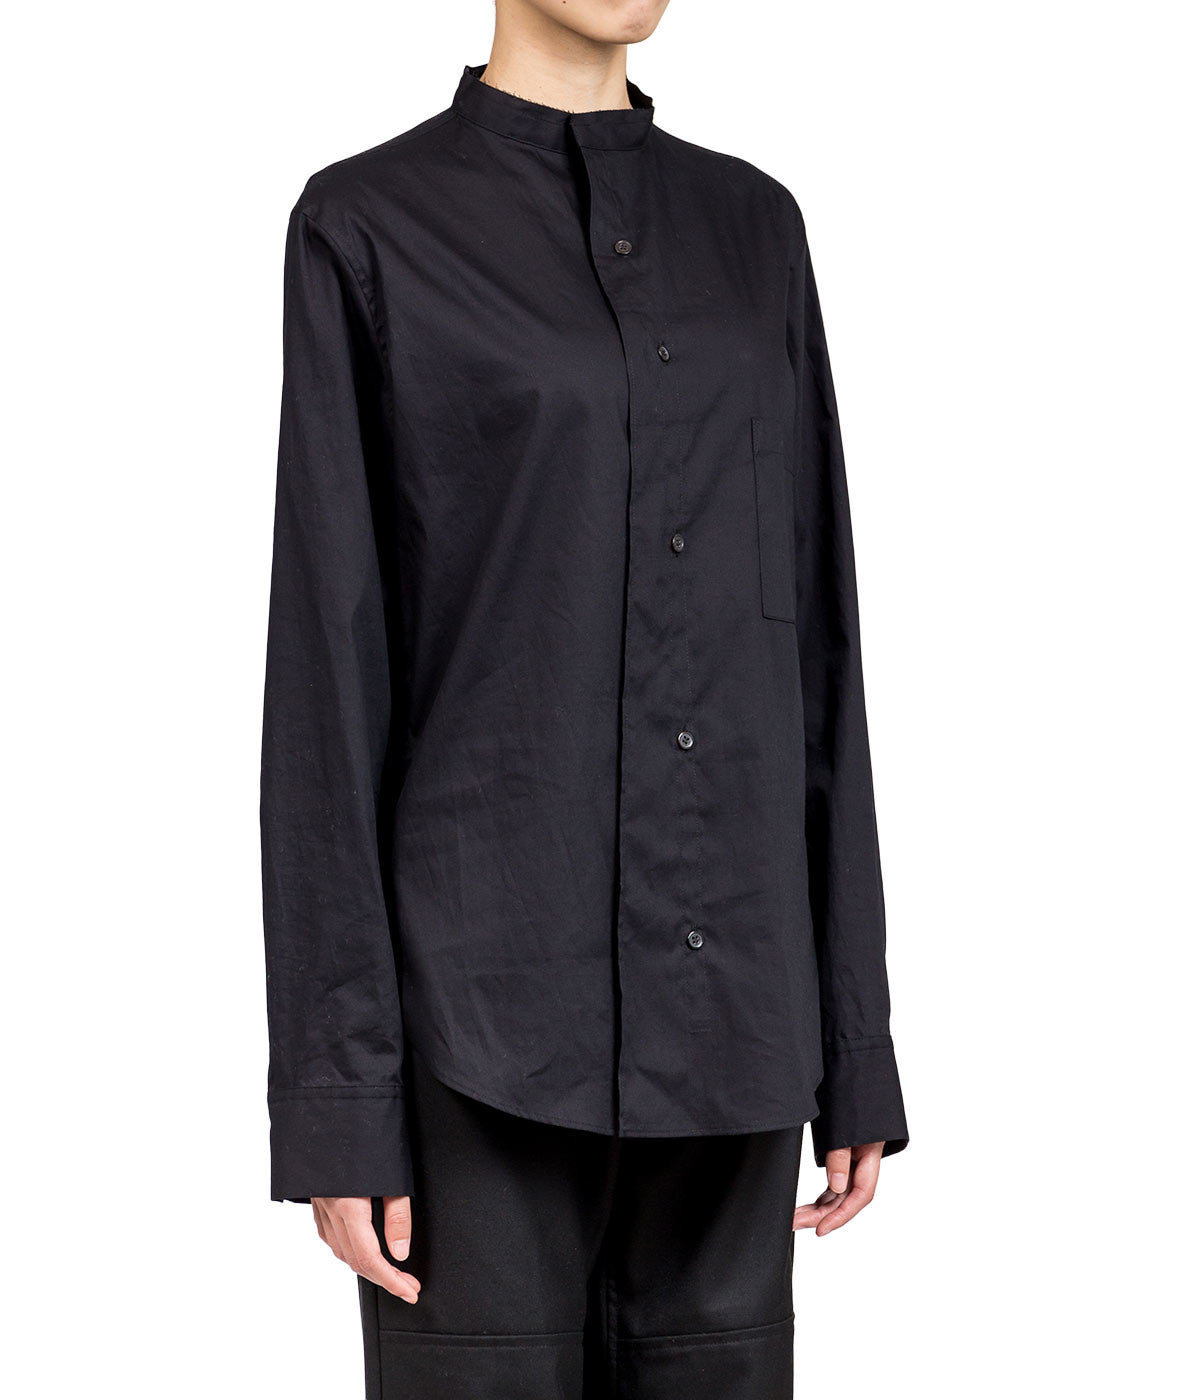 Black No Collar Shirt